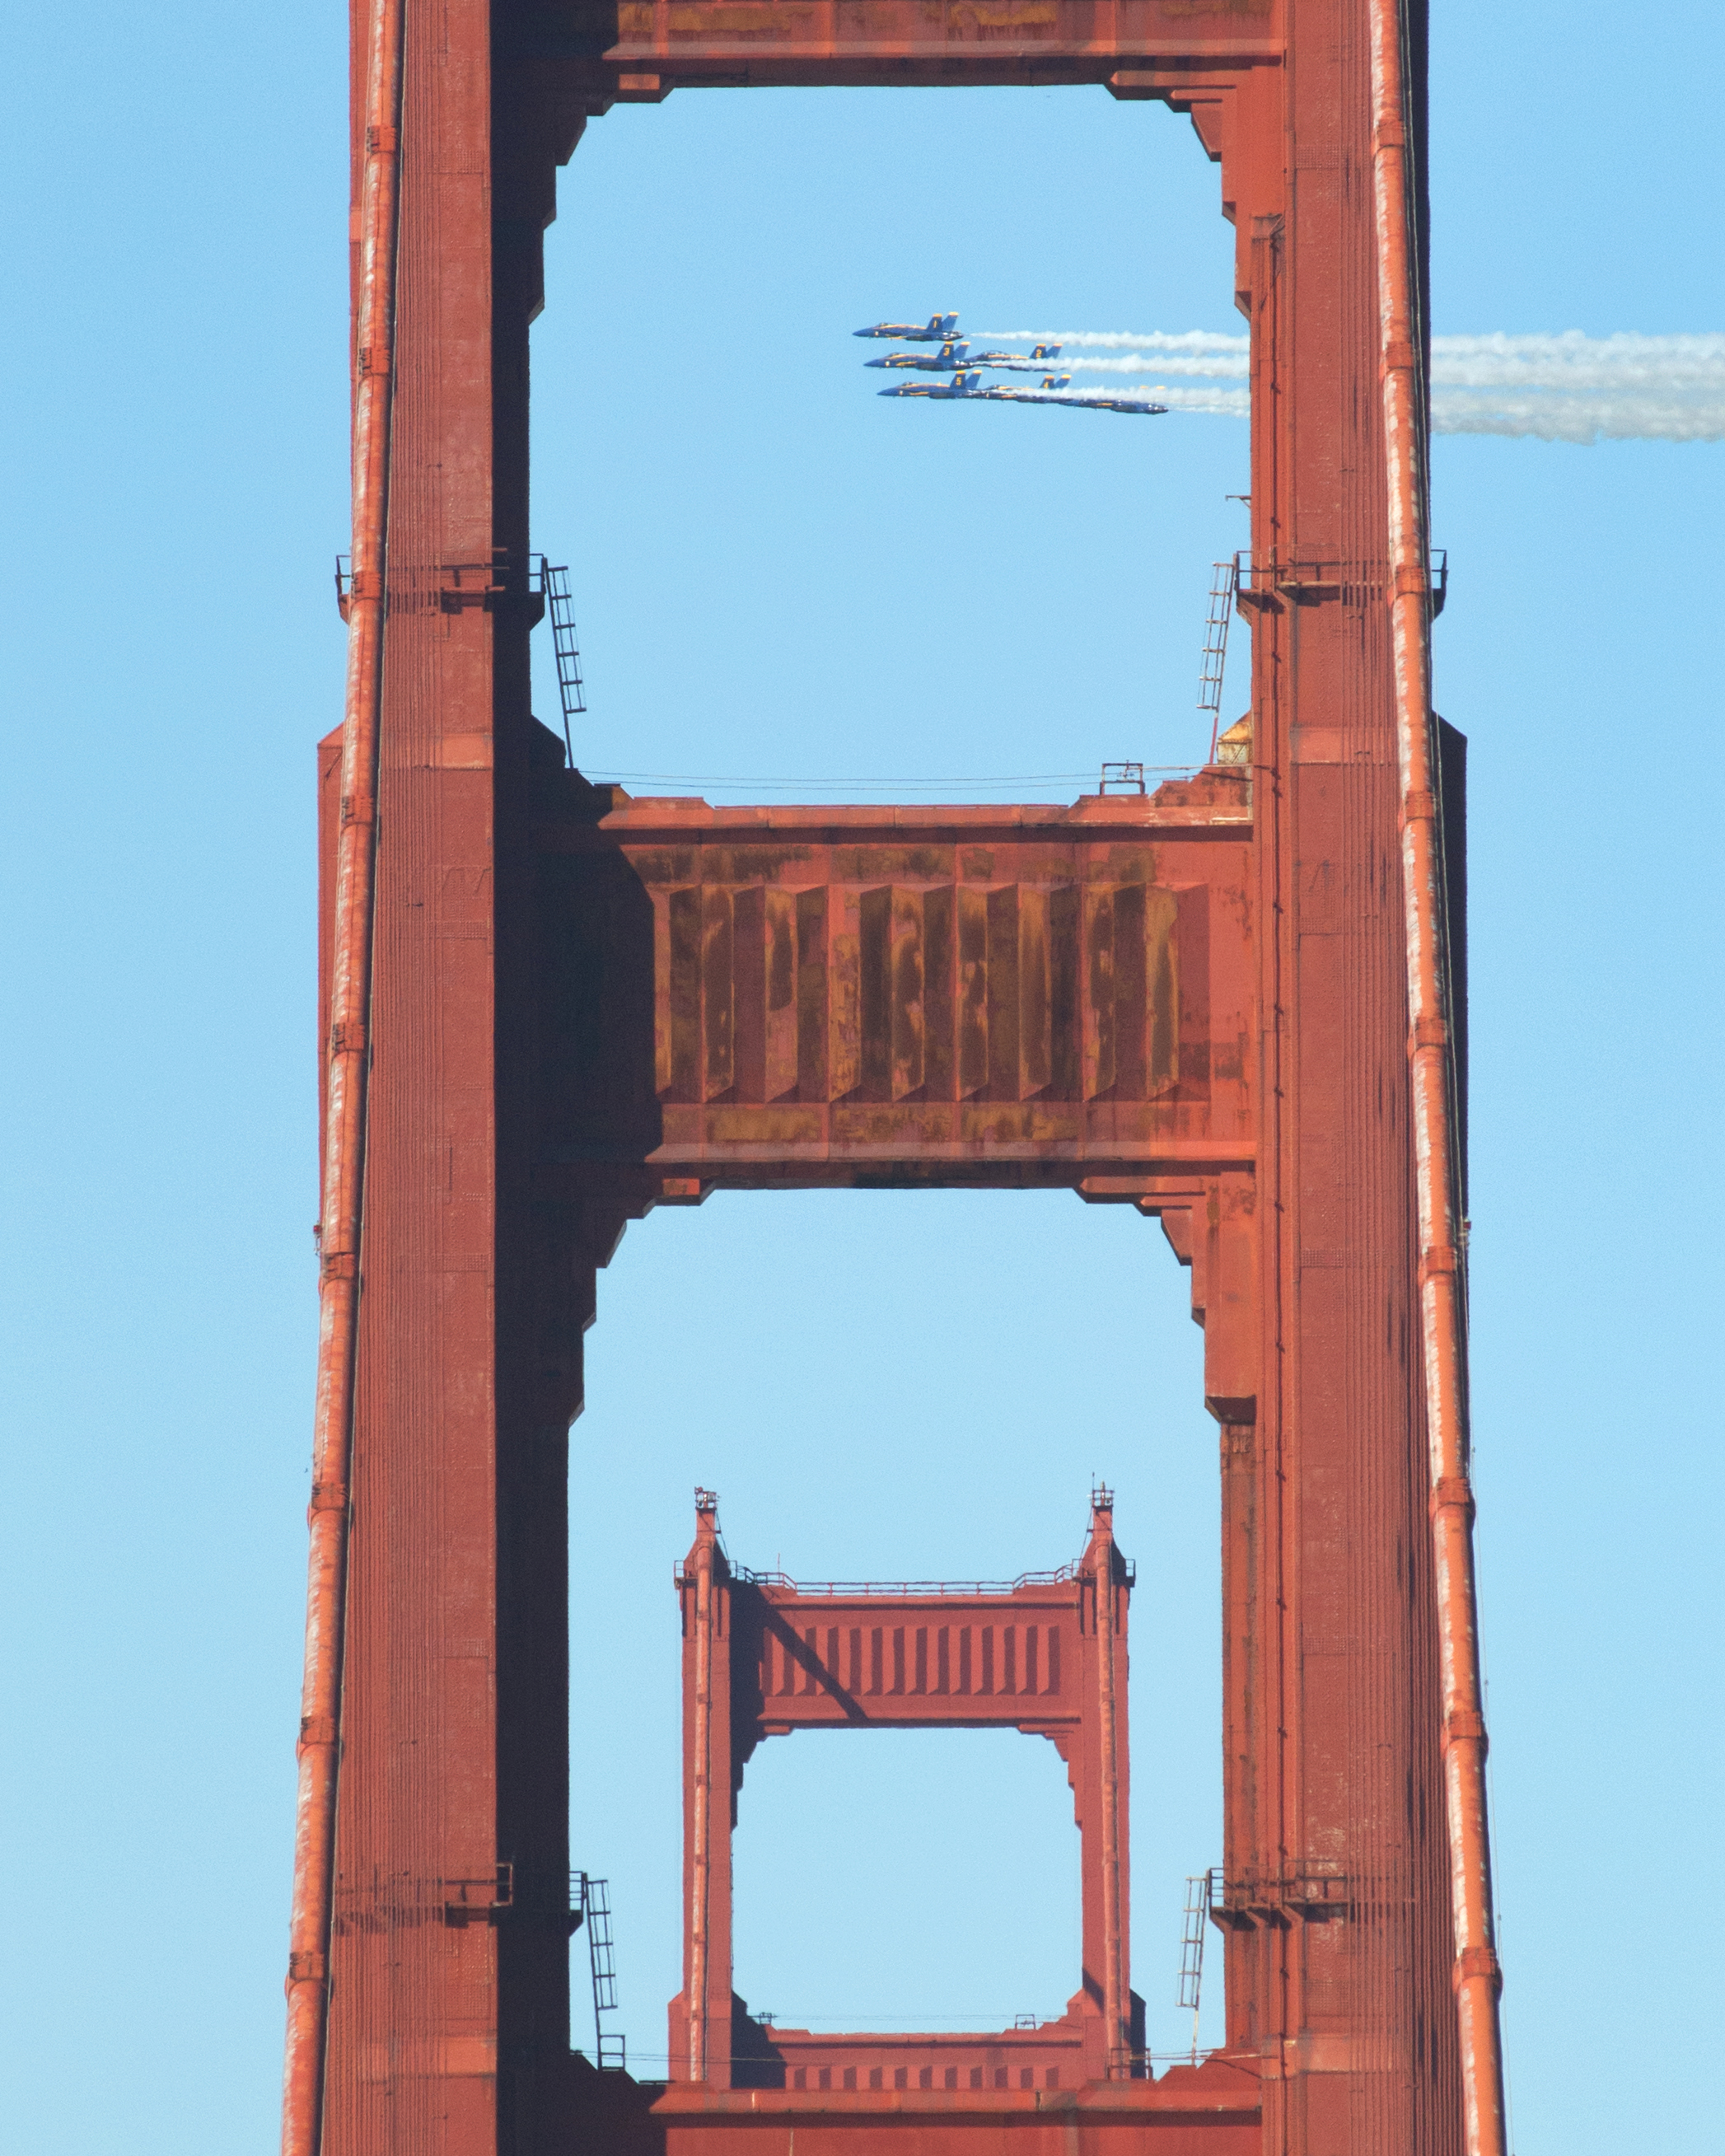 The U.S. Navy Blue Angels fly over the Golden Gate Bridge in San Francisco, Ca. during the final run of Fleet Week on Saturday, October 6, 2018. Photo by David Andrews.